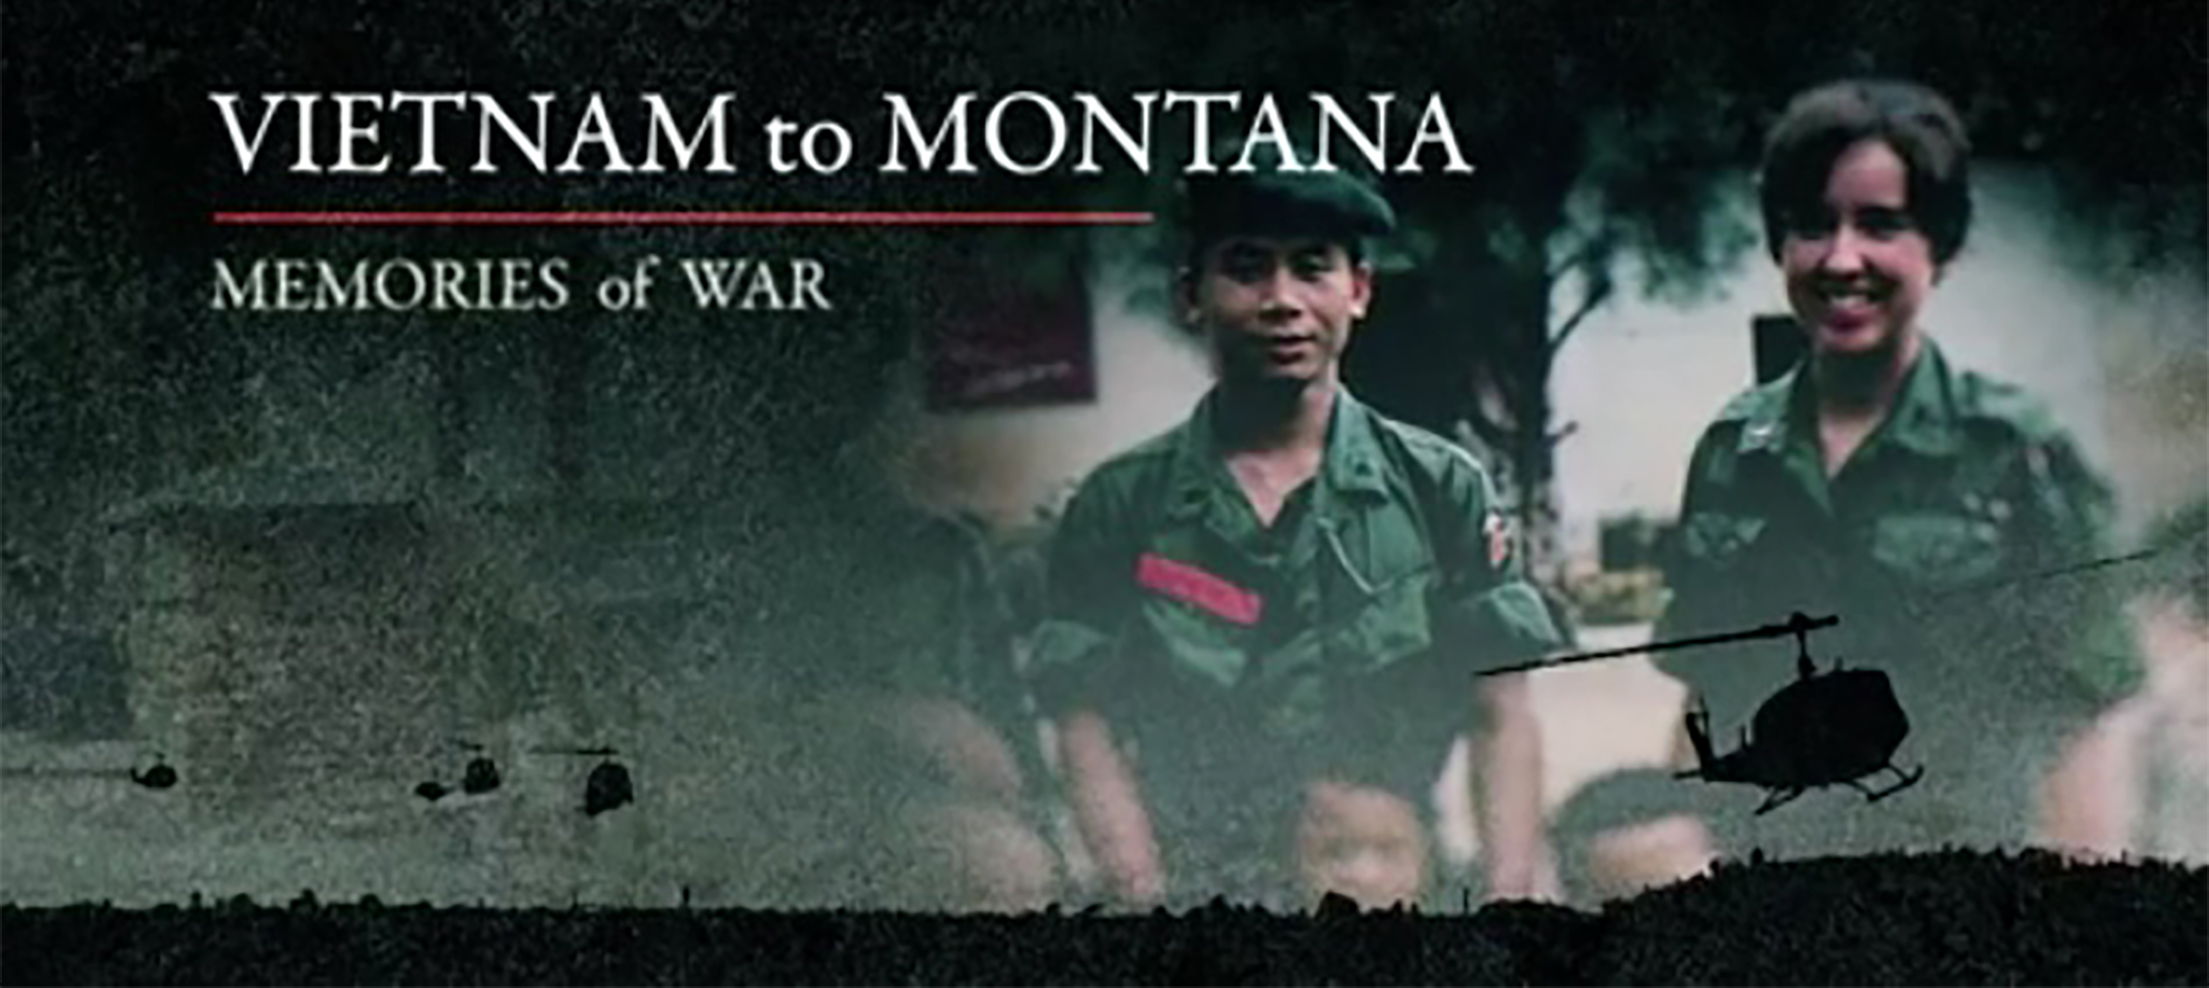 Vietnam to Montana: Memories of War